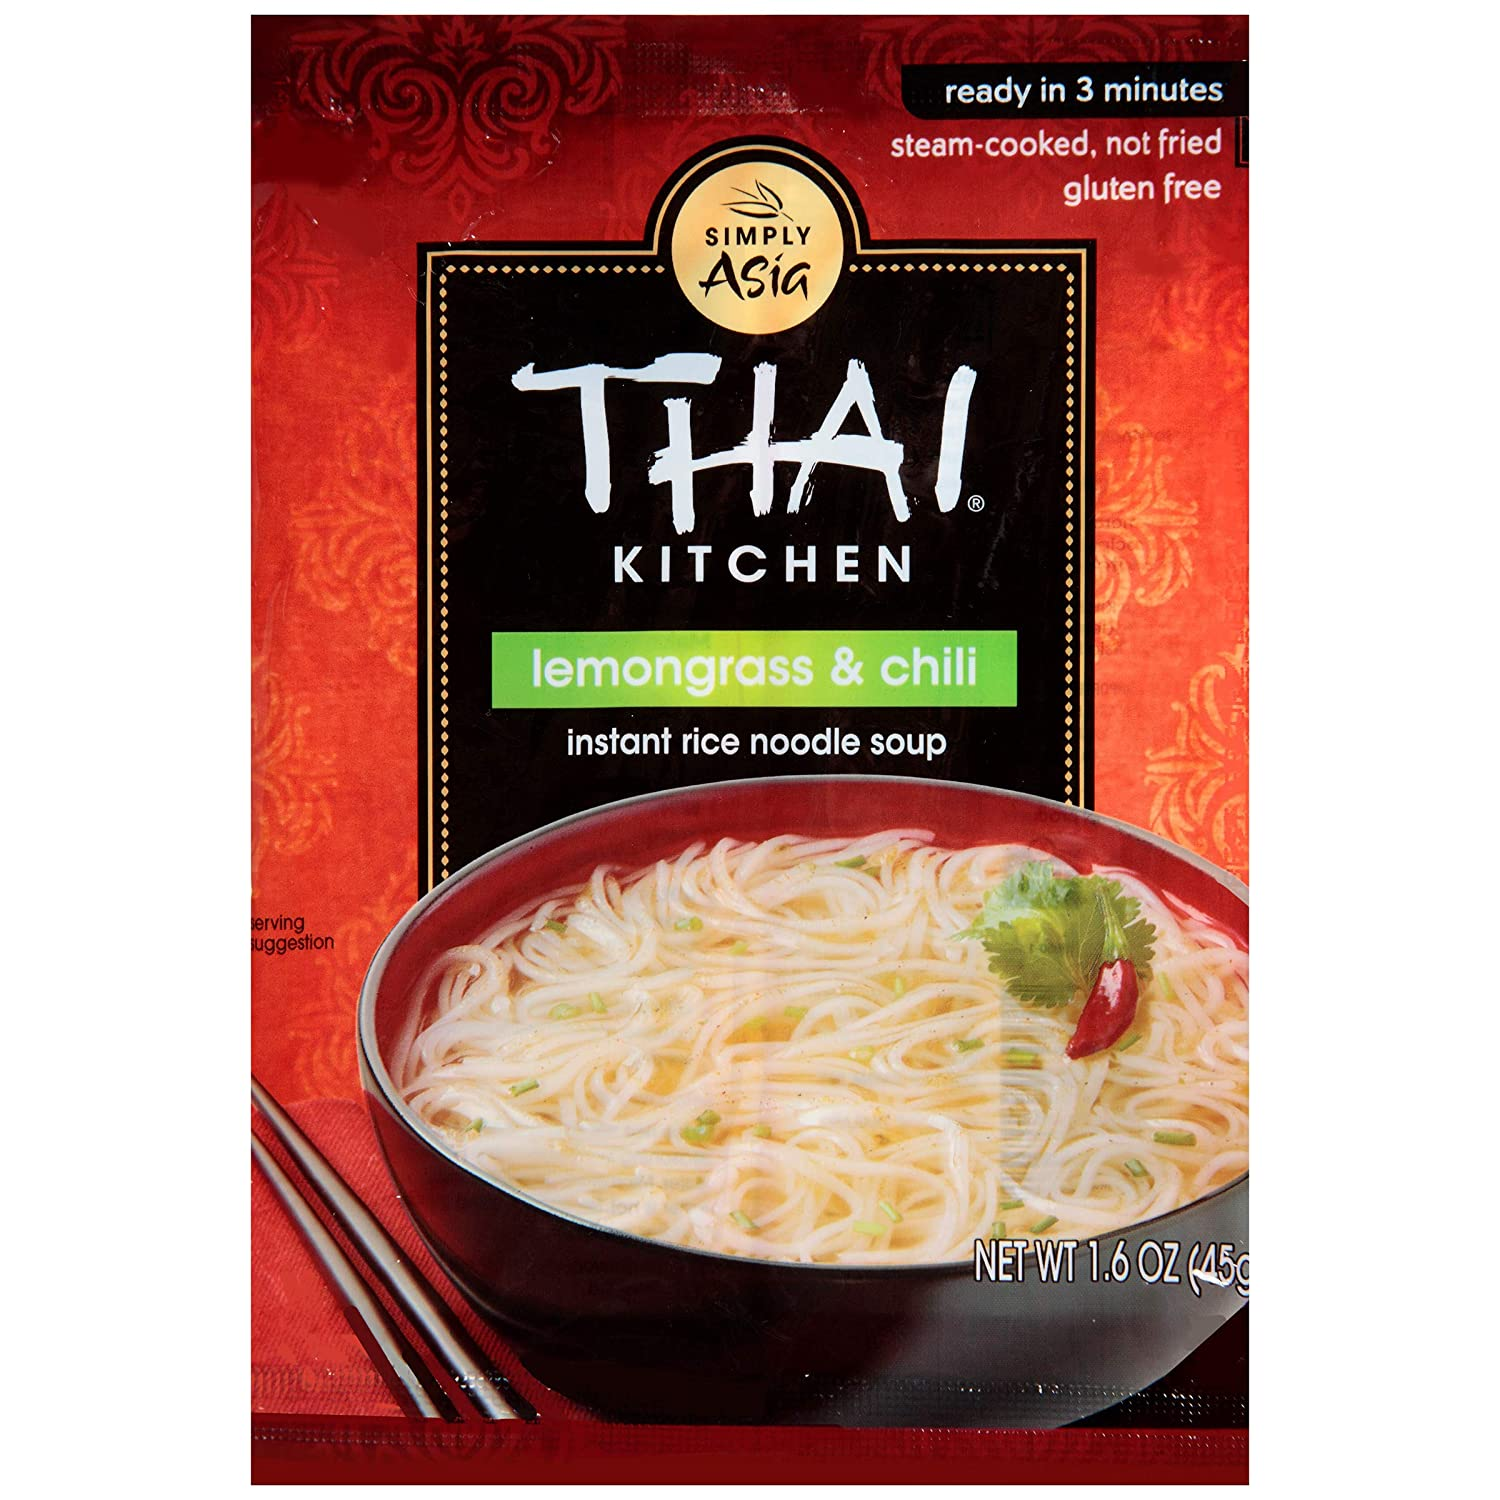 Thai Kitchen Gluten Free Lemongrass & Chili Instant Rice Noodle Soup, 1.6 oz (Pack of 12)